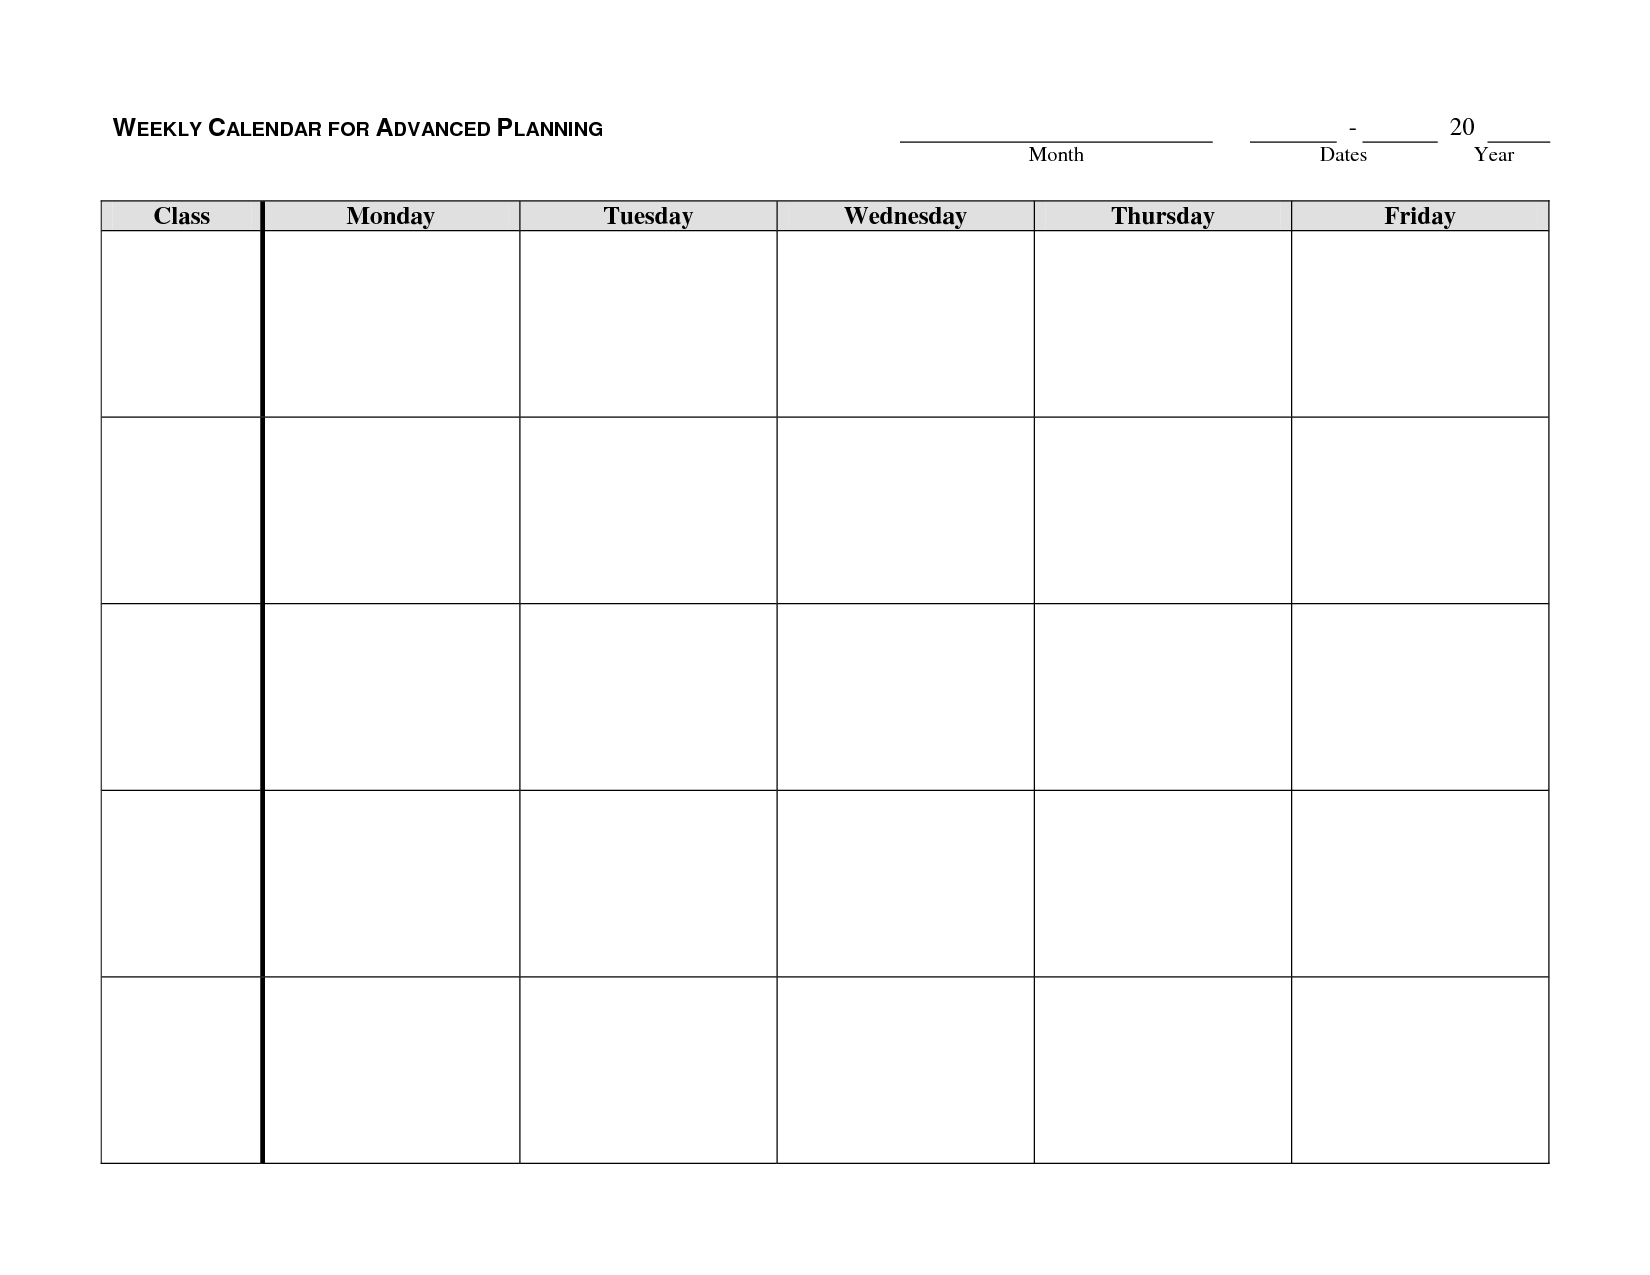 Weekly Calendar Template - Google Search | Autism/school | Weekly intended for Monday Through Friday Blank Calendar Printable